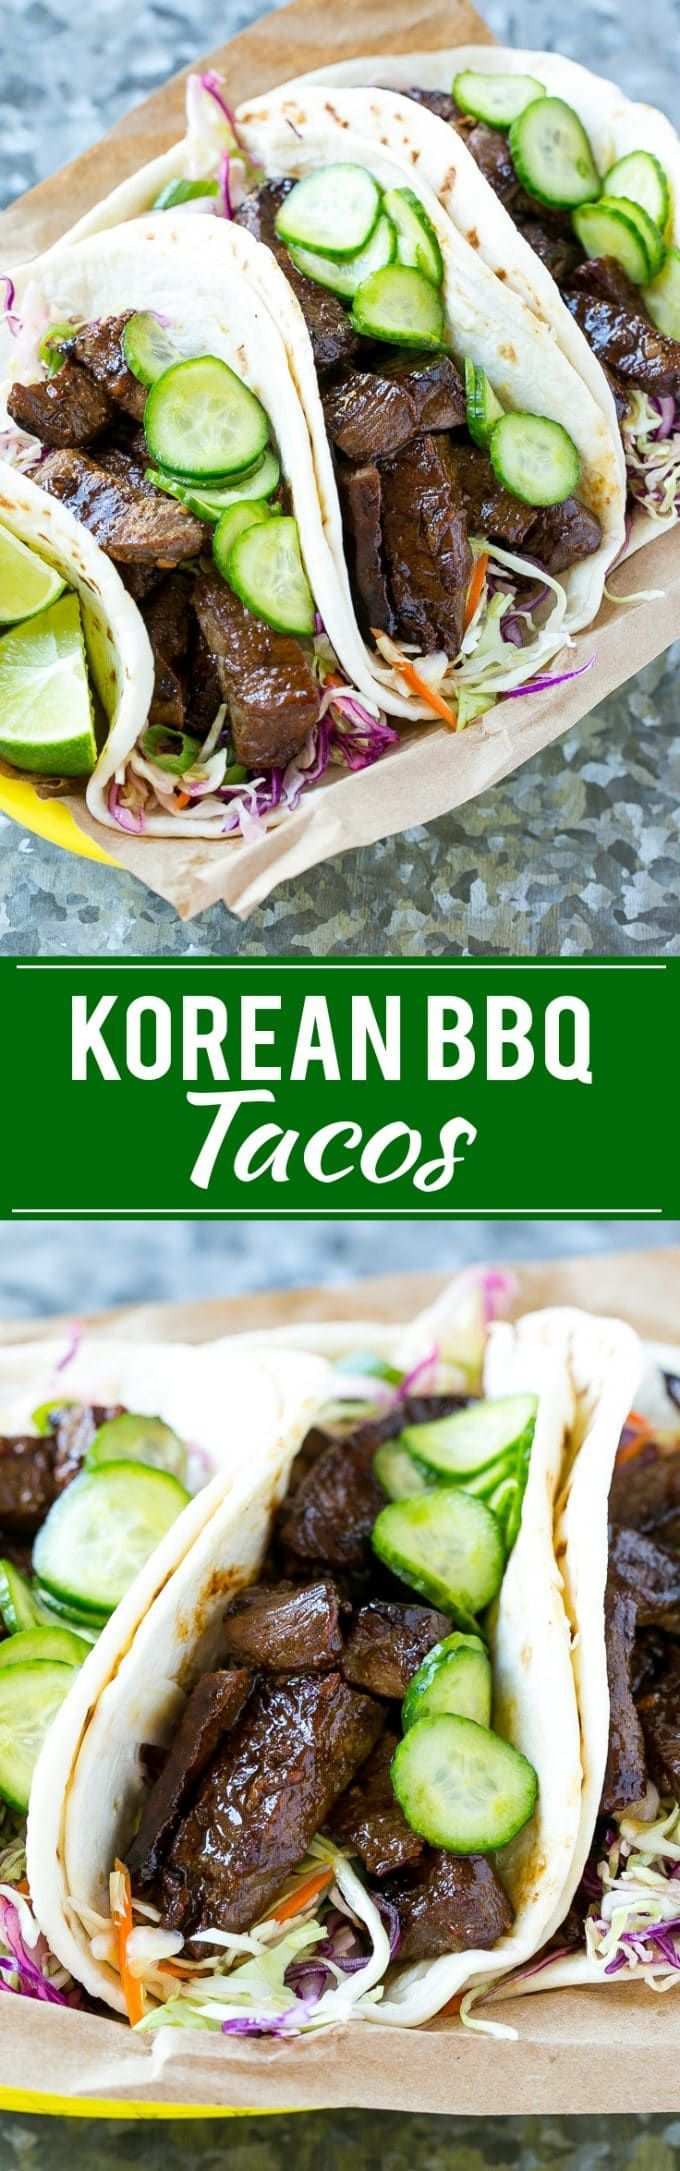 Korean BBQ Tacos Recipe | Beef Tacos | Korean Beef | Easy Taco Recipe